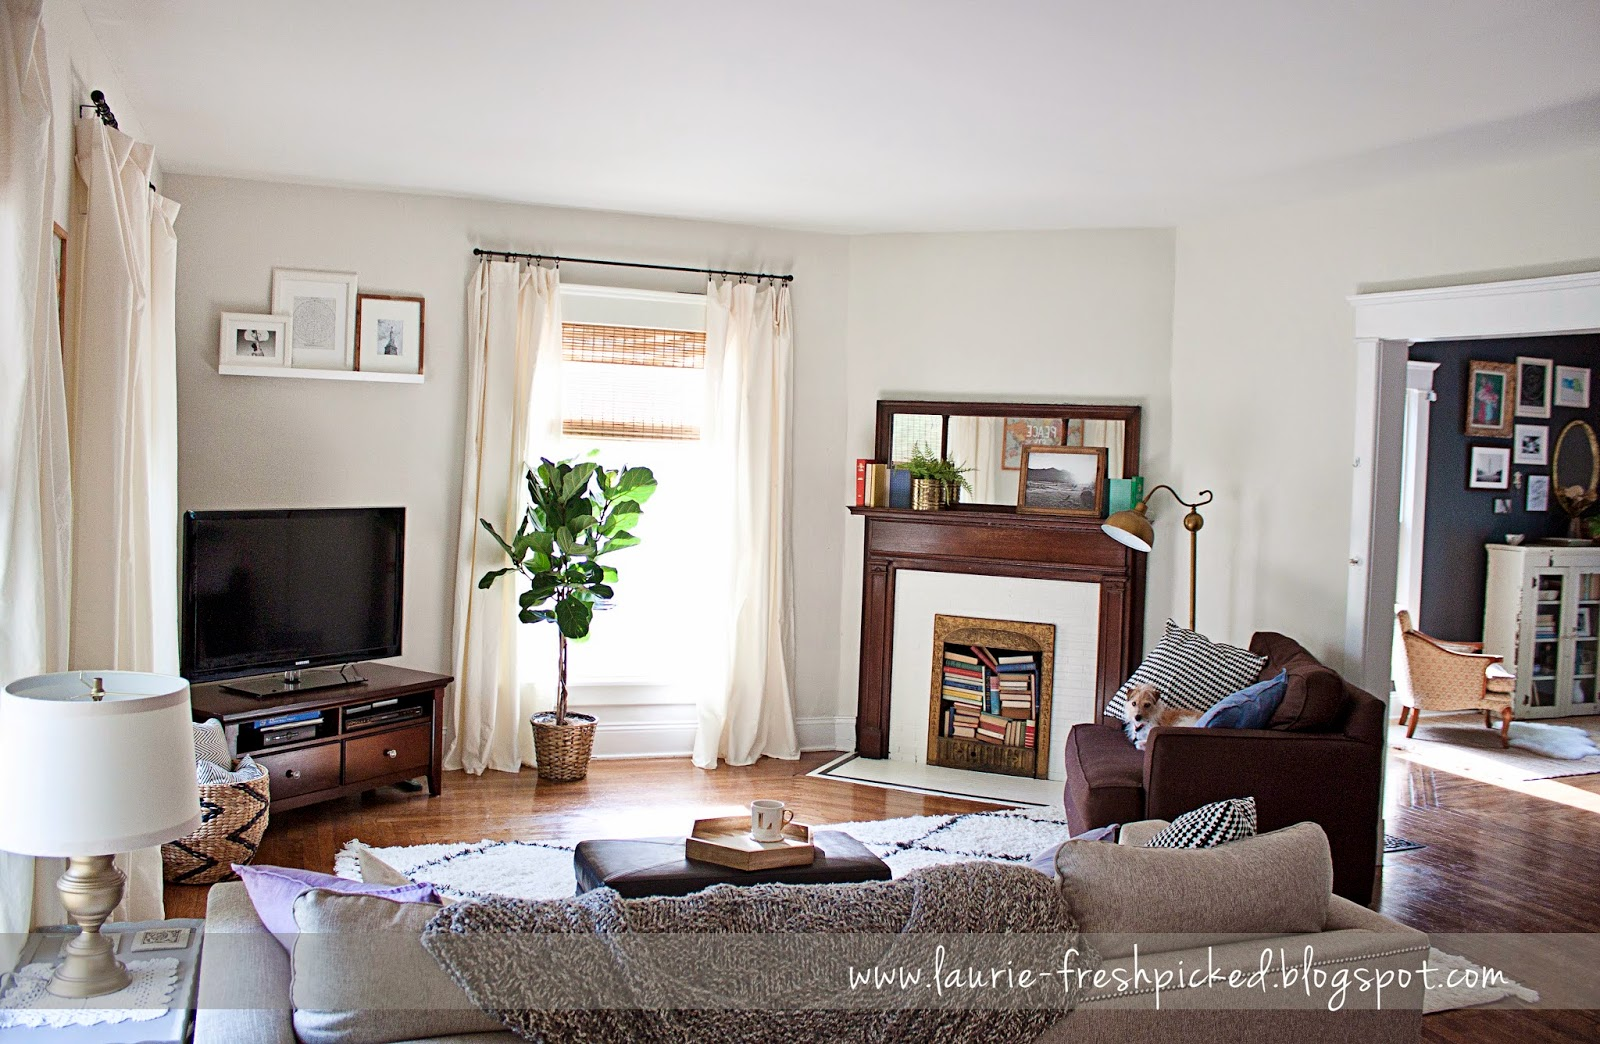 New Rug Call Truce Andys Feet besides Disney Inspired Moroccan Living Room besides Origami Coffee Table Config also Home Updates Living Room additionally Leons Sofa Beds. on living room west elm